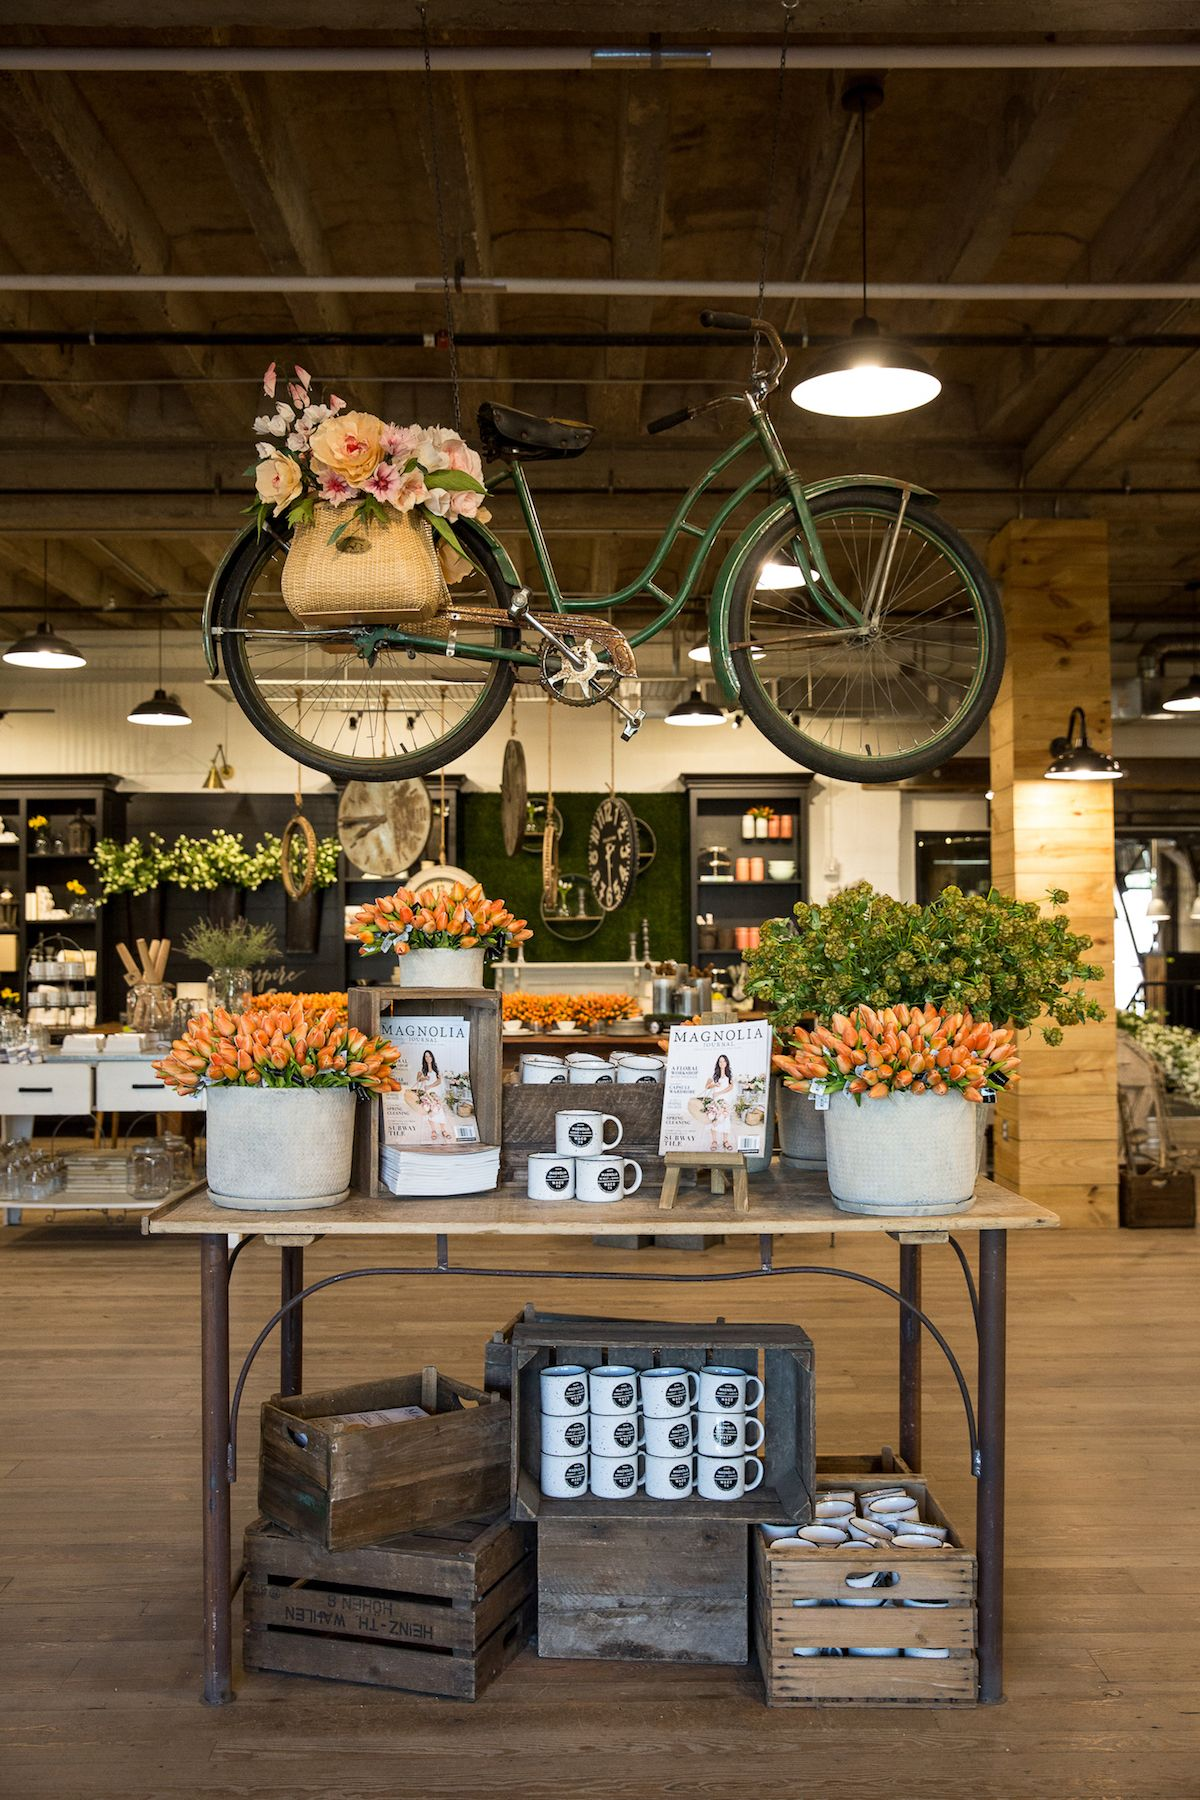 One of my favorite things about a fresh new season is watching the stores in town bring out their fresh and creative displays. When I lived in New York City in college, the smallest details—like the scent of a burning...